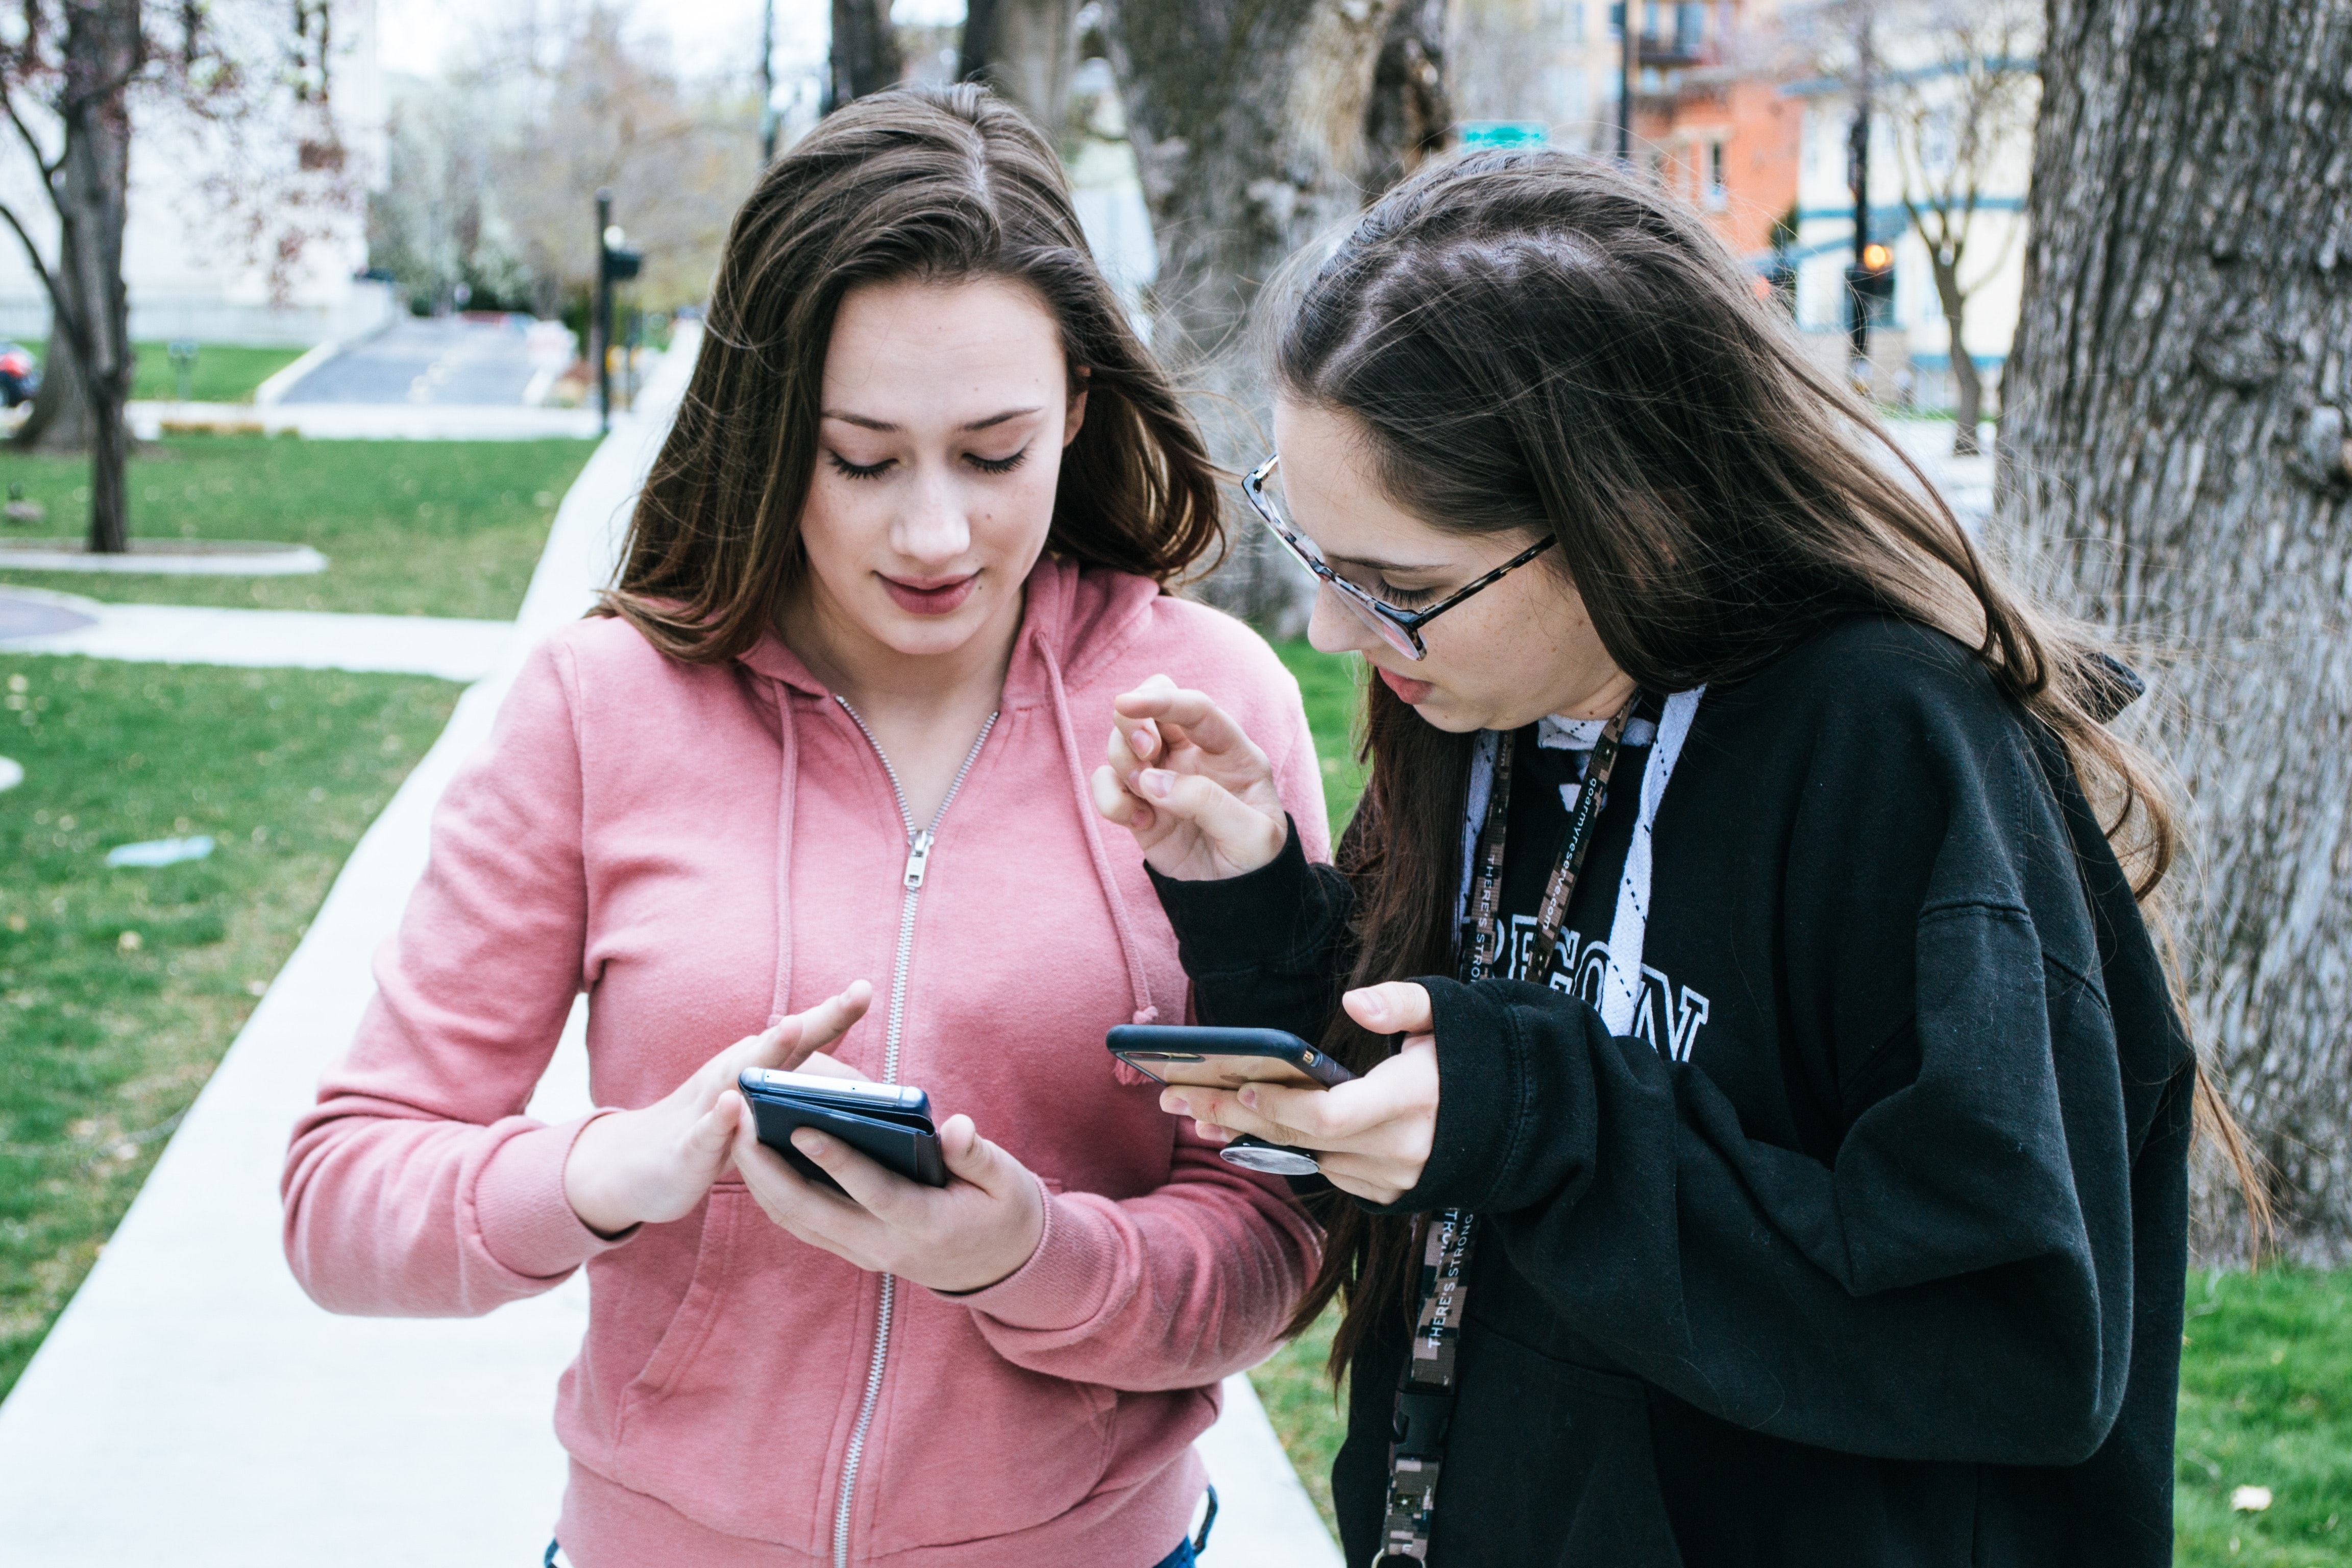 Girls show mobile photos to each other at the park